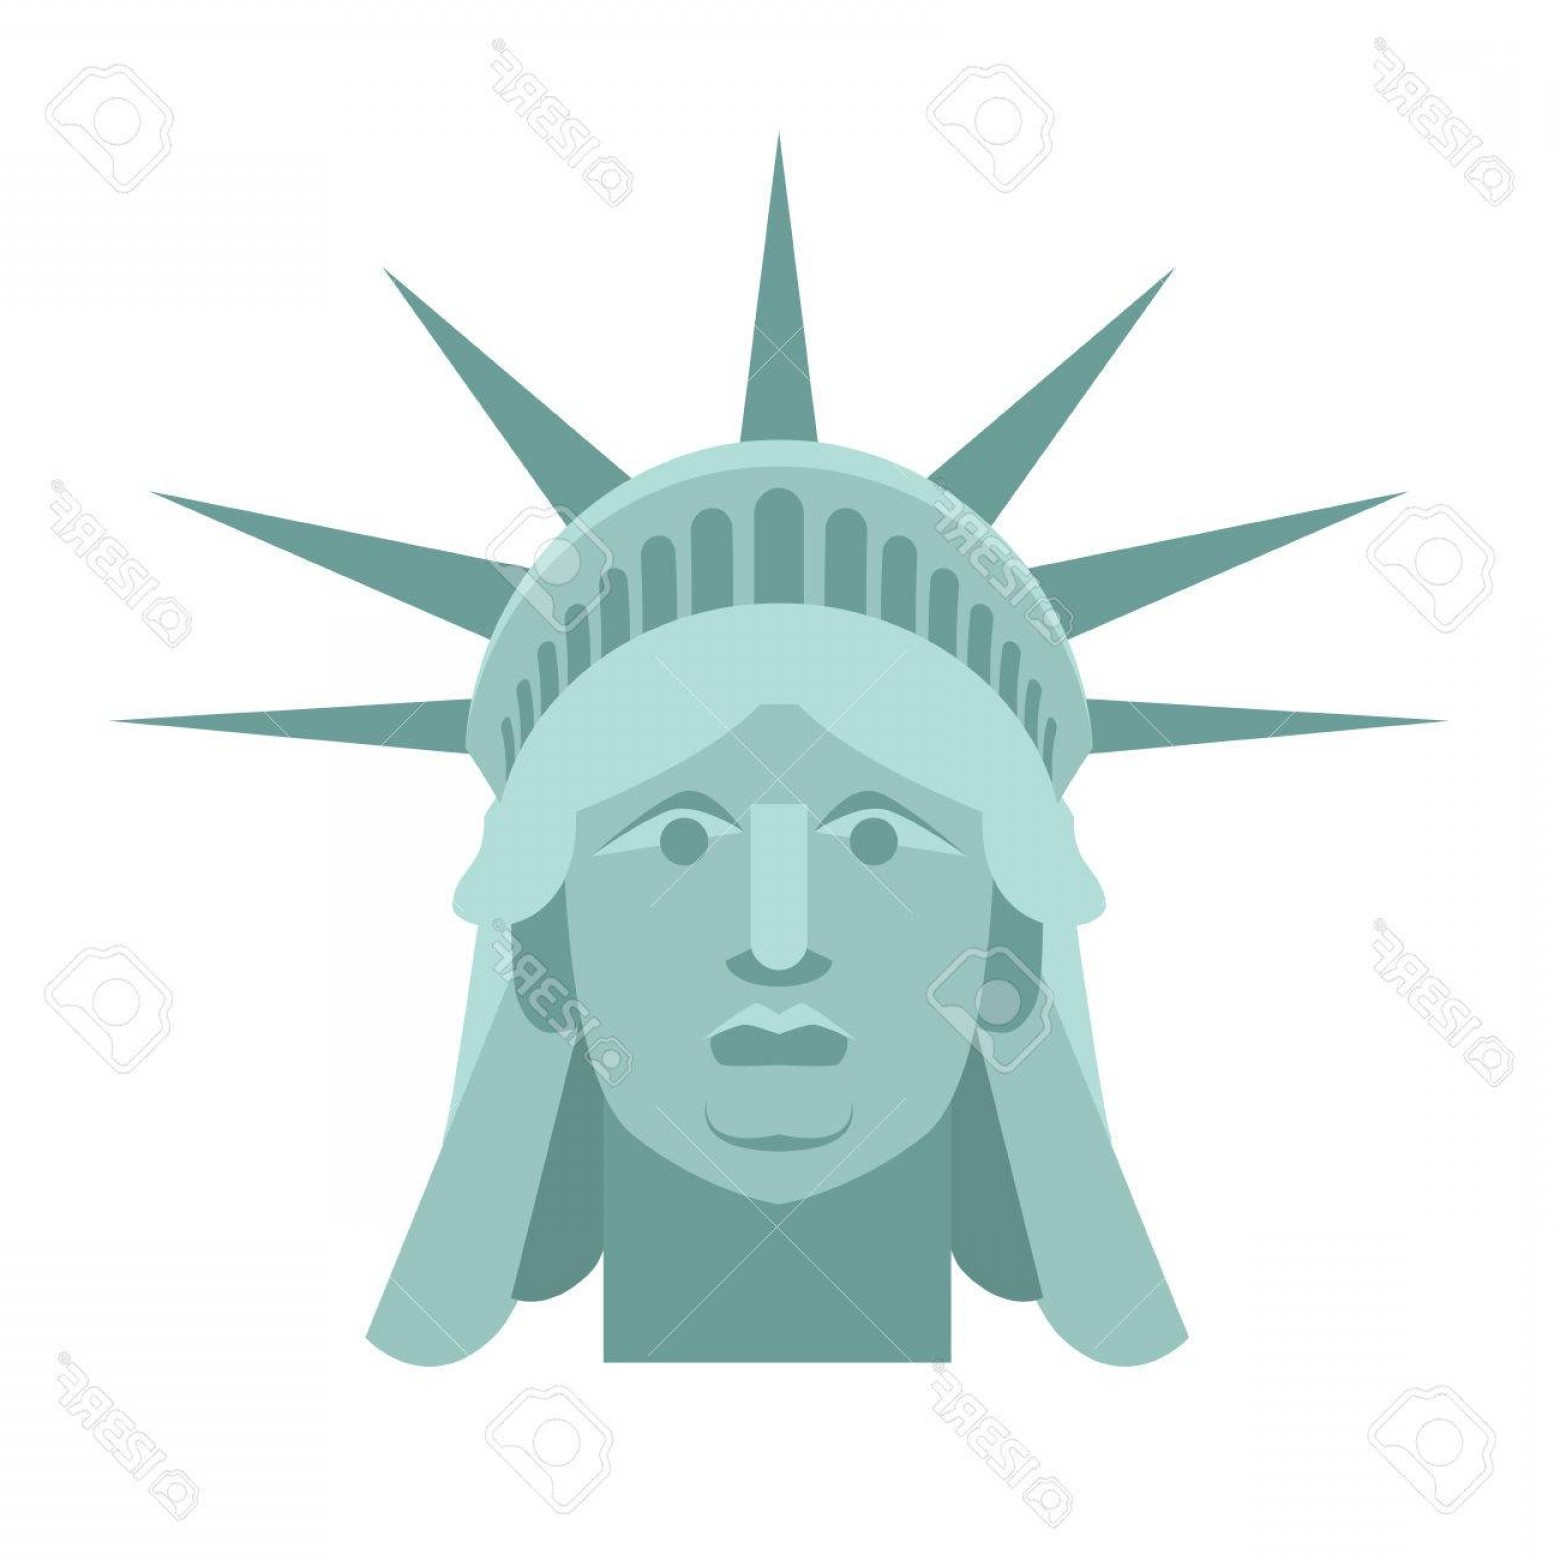 Statue Of Liberty Face Vector: Photostock Vector Head Of Statue Of Liberty Face Sculpture America Monument In Us Architecture National Historic Landm